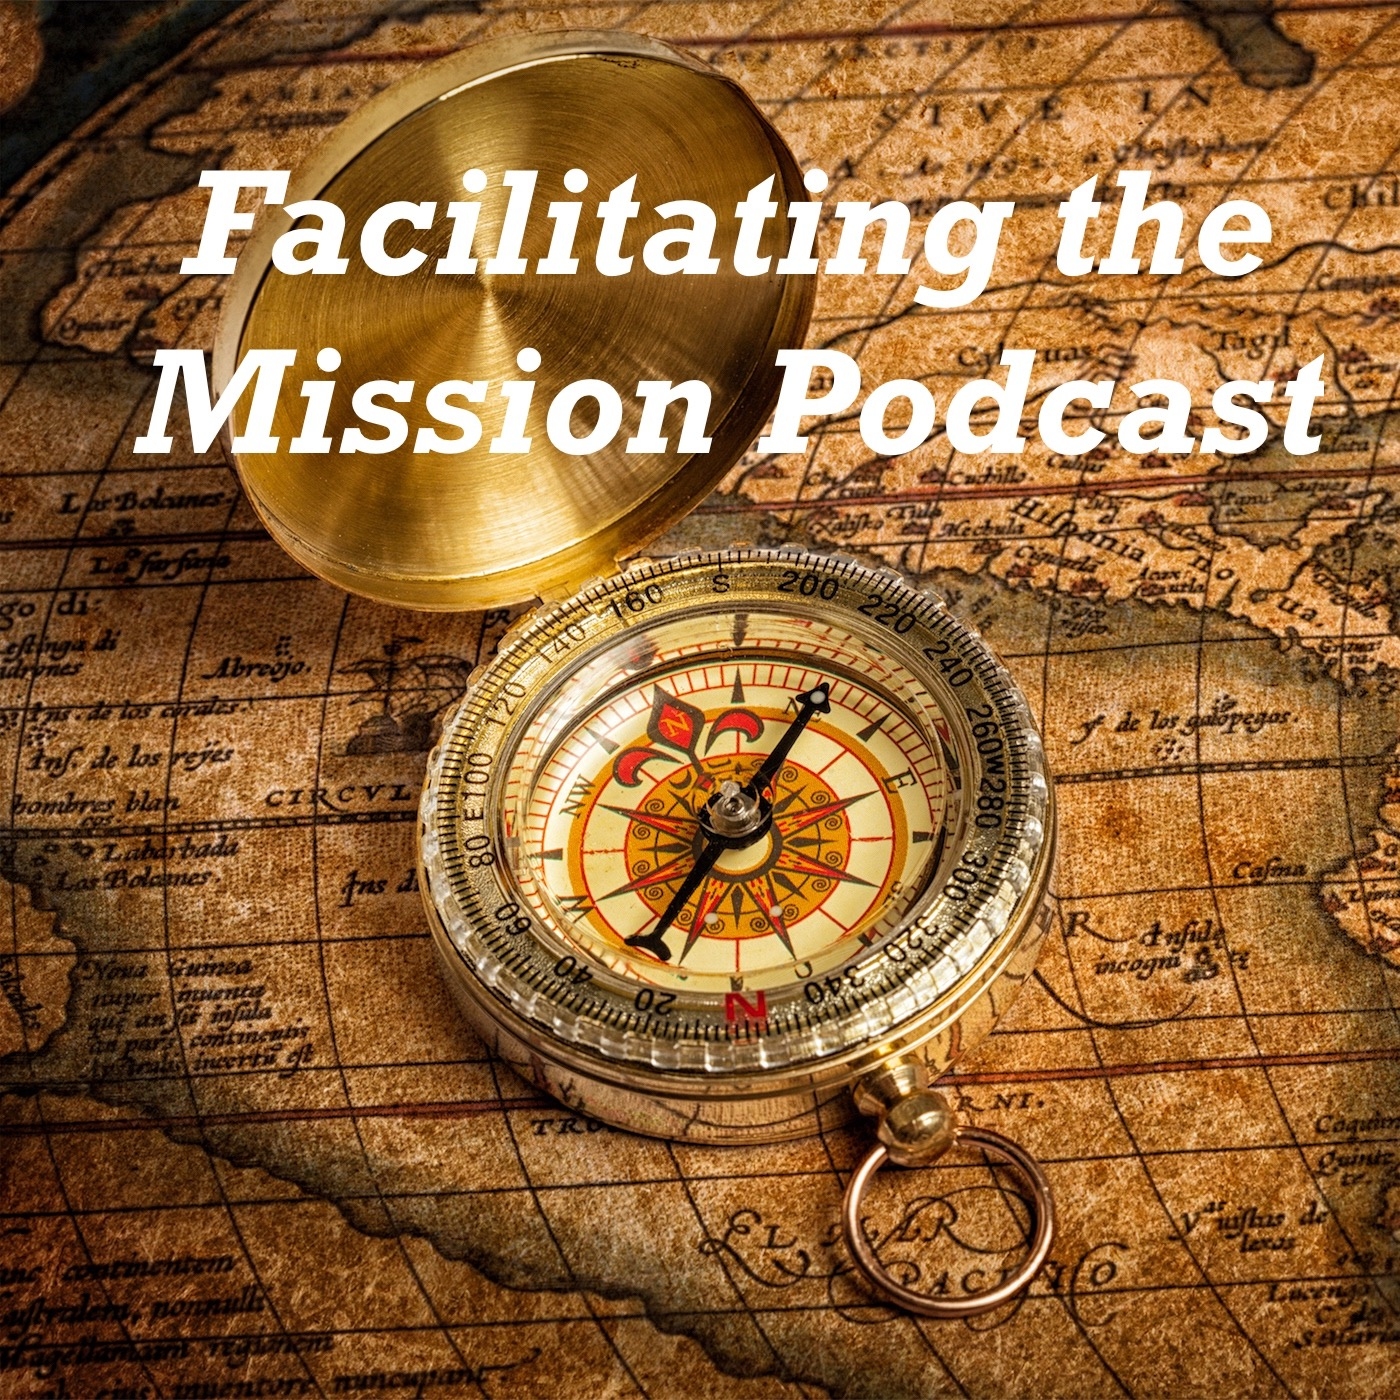 Facilitating the Mission Podcast